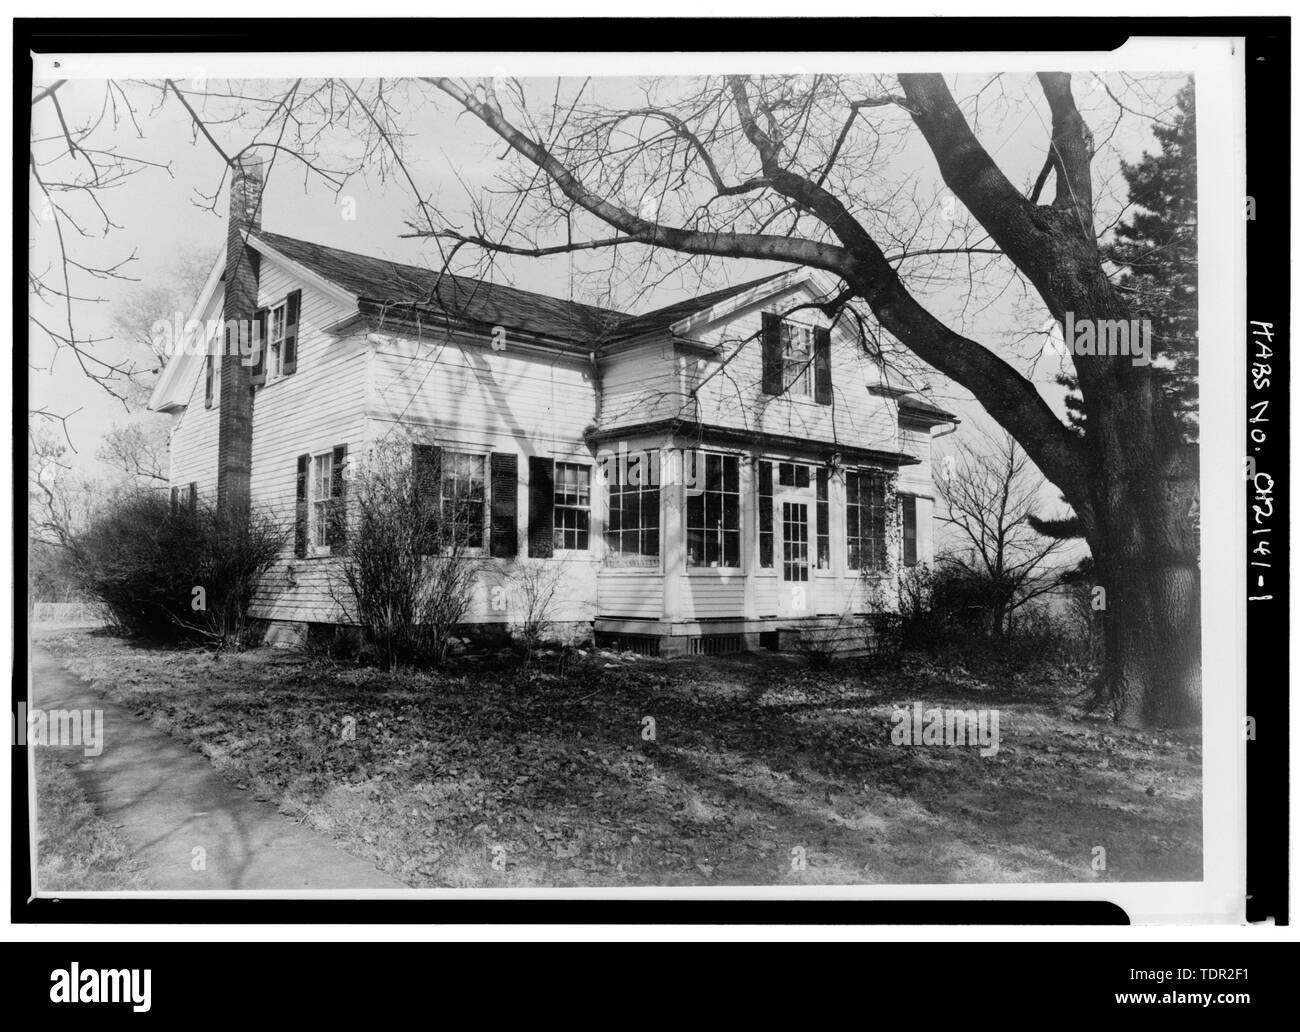 Photograph of photograph by Steckel Photographers, February 10, 1973. Original print in Field Records. SOUTHWEST ELEVATION. - Abbott-Page House, Mason Road, State Route 13 vicinity, Milan, Erie County, OH - Stock Image